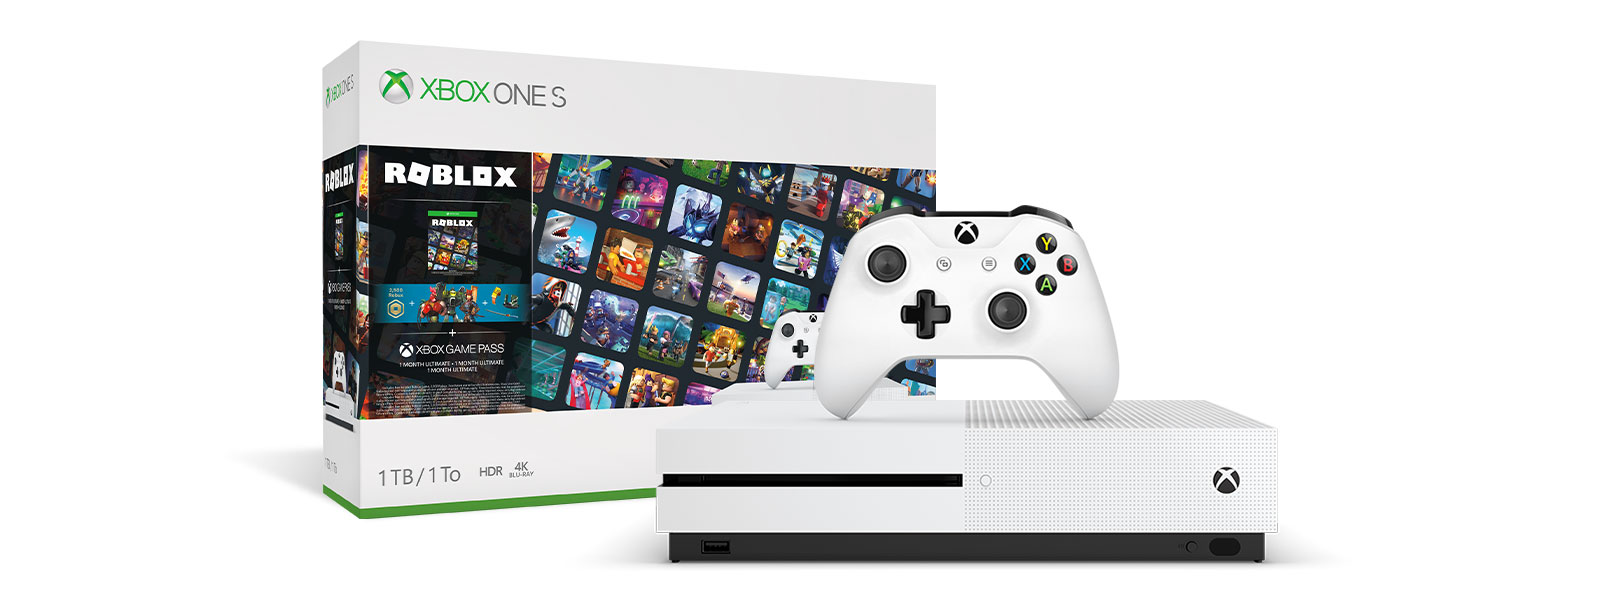 Xbox One S Roblox Bundle product box and Xbox One S